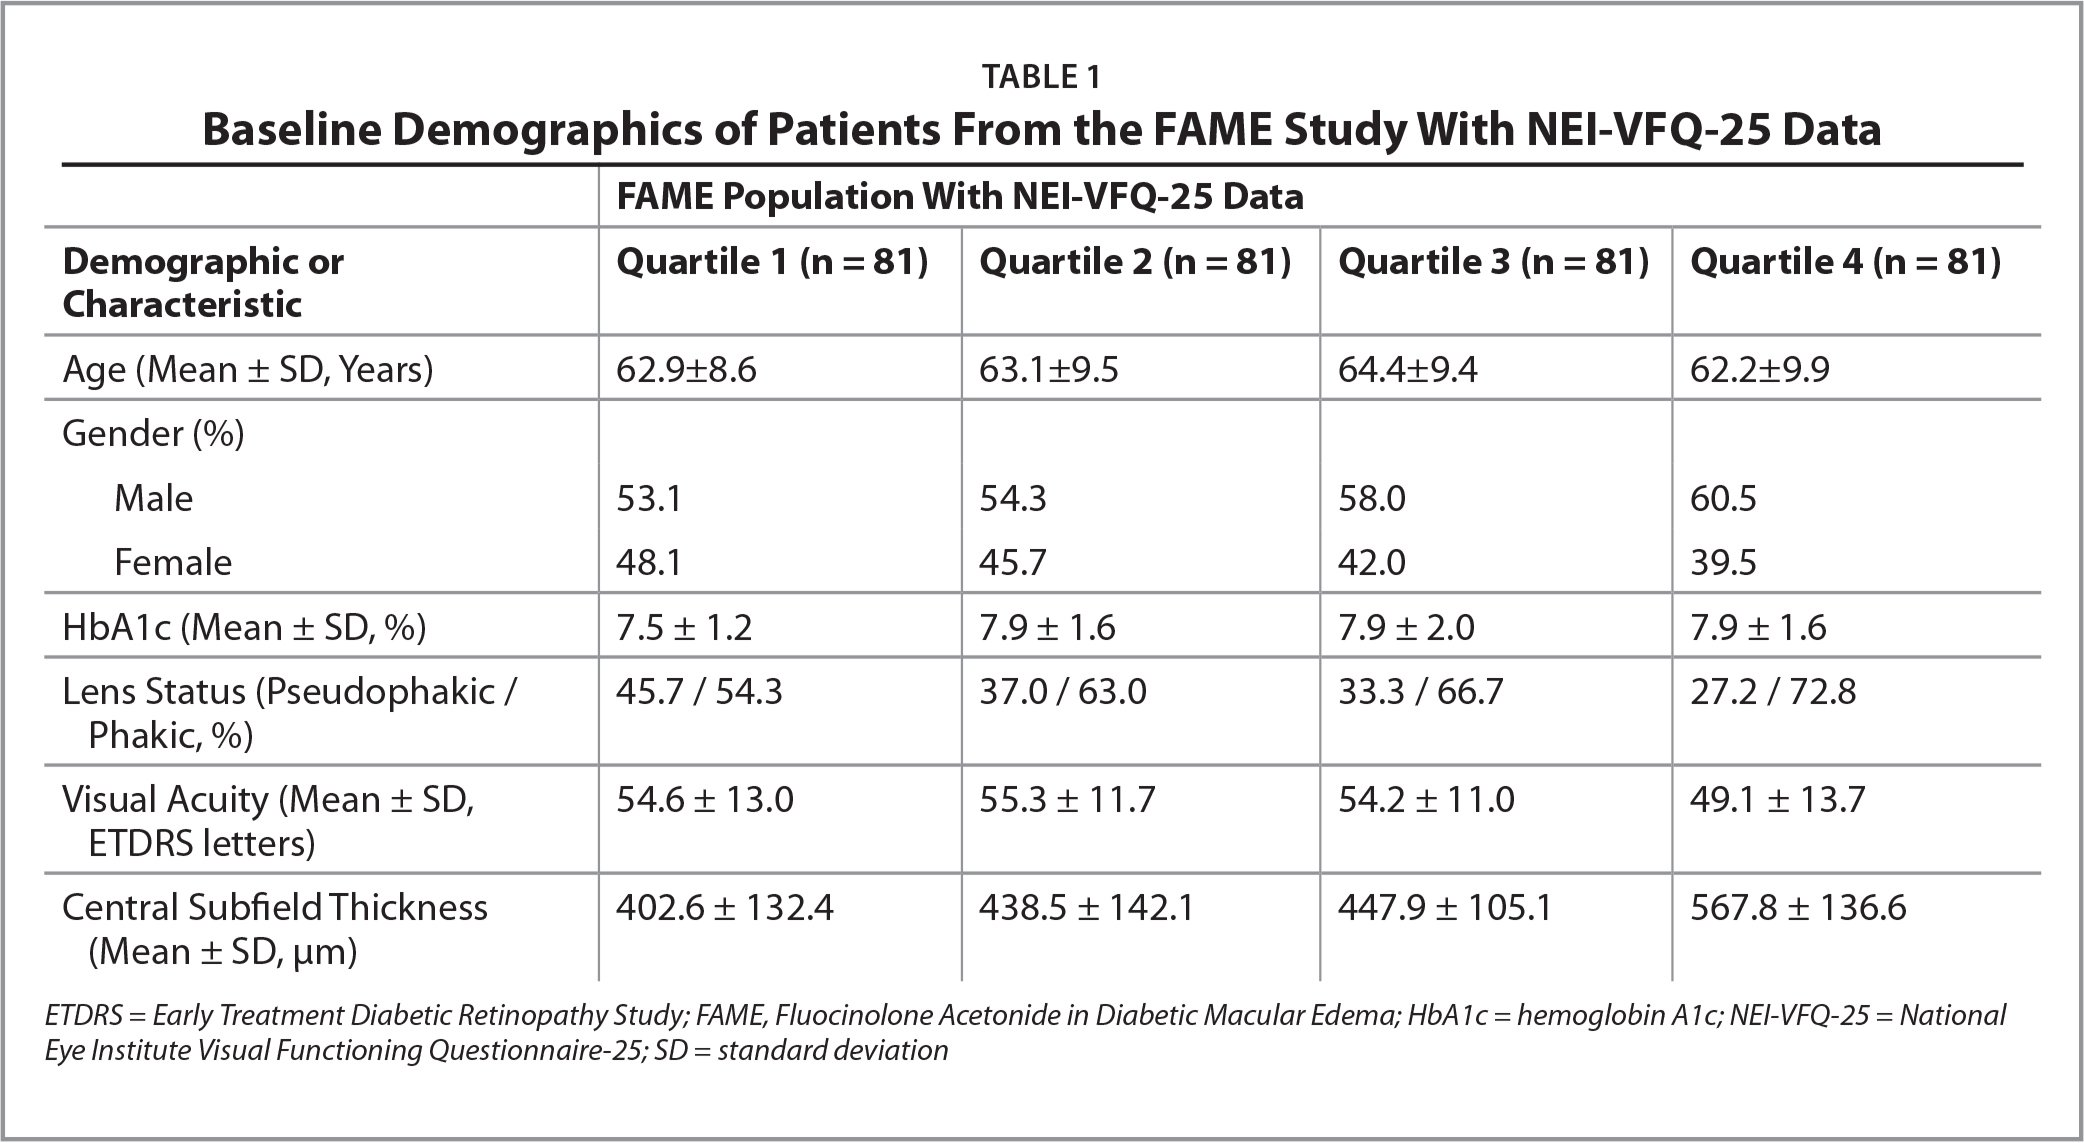 Baseline Demographics of Patients From the FAME Study With NEI-VFQ-25 Data